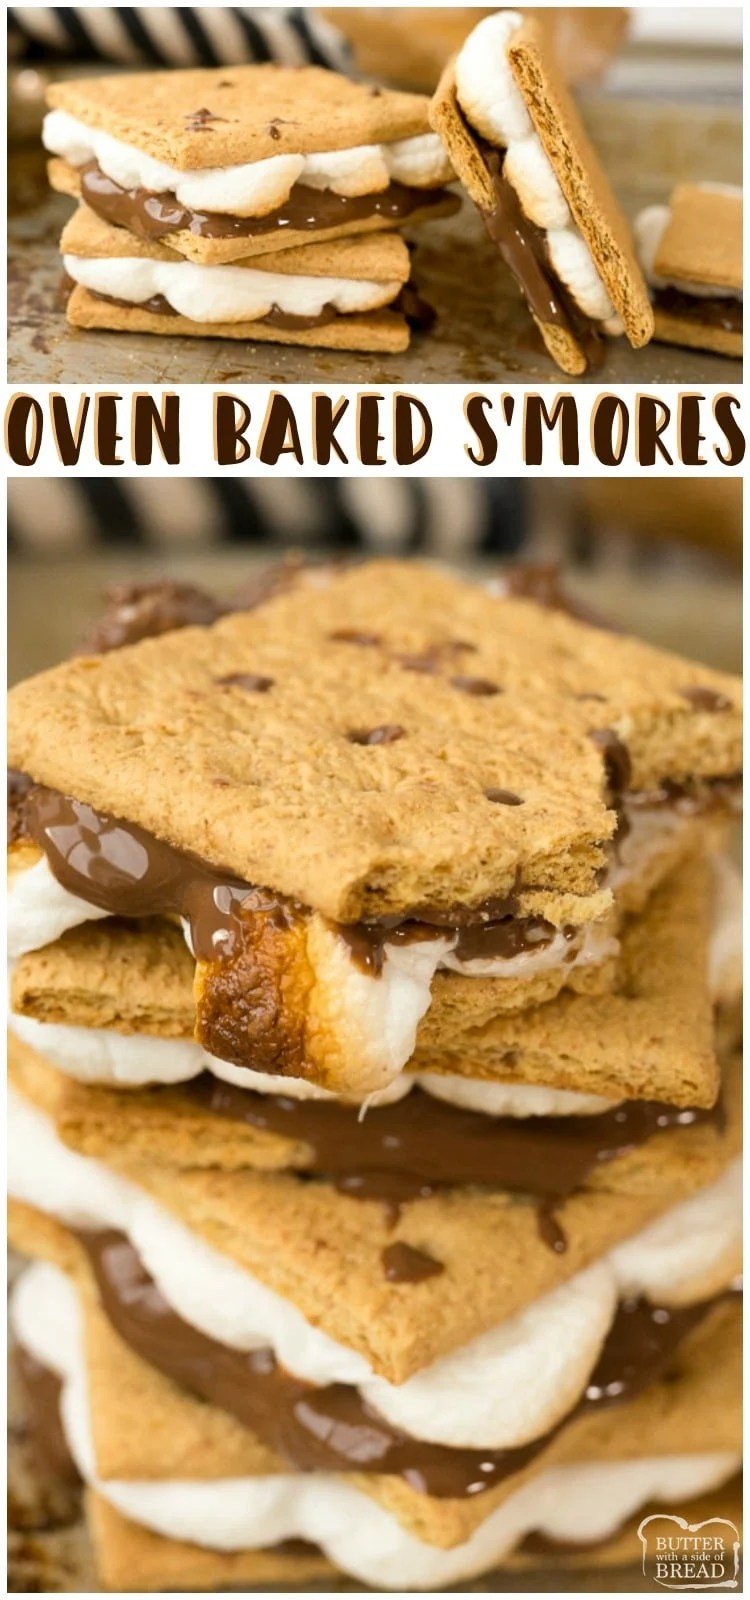 Smores in the Oven are the perfect way to make oven baked s'mores for a crowd, without the campfire! Have this classic summer dessert anytime of year! Try it as a s'mores dip if you feeling fancy.